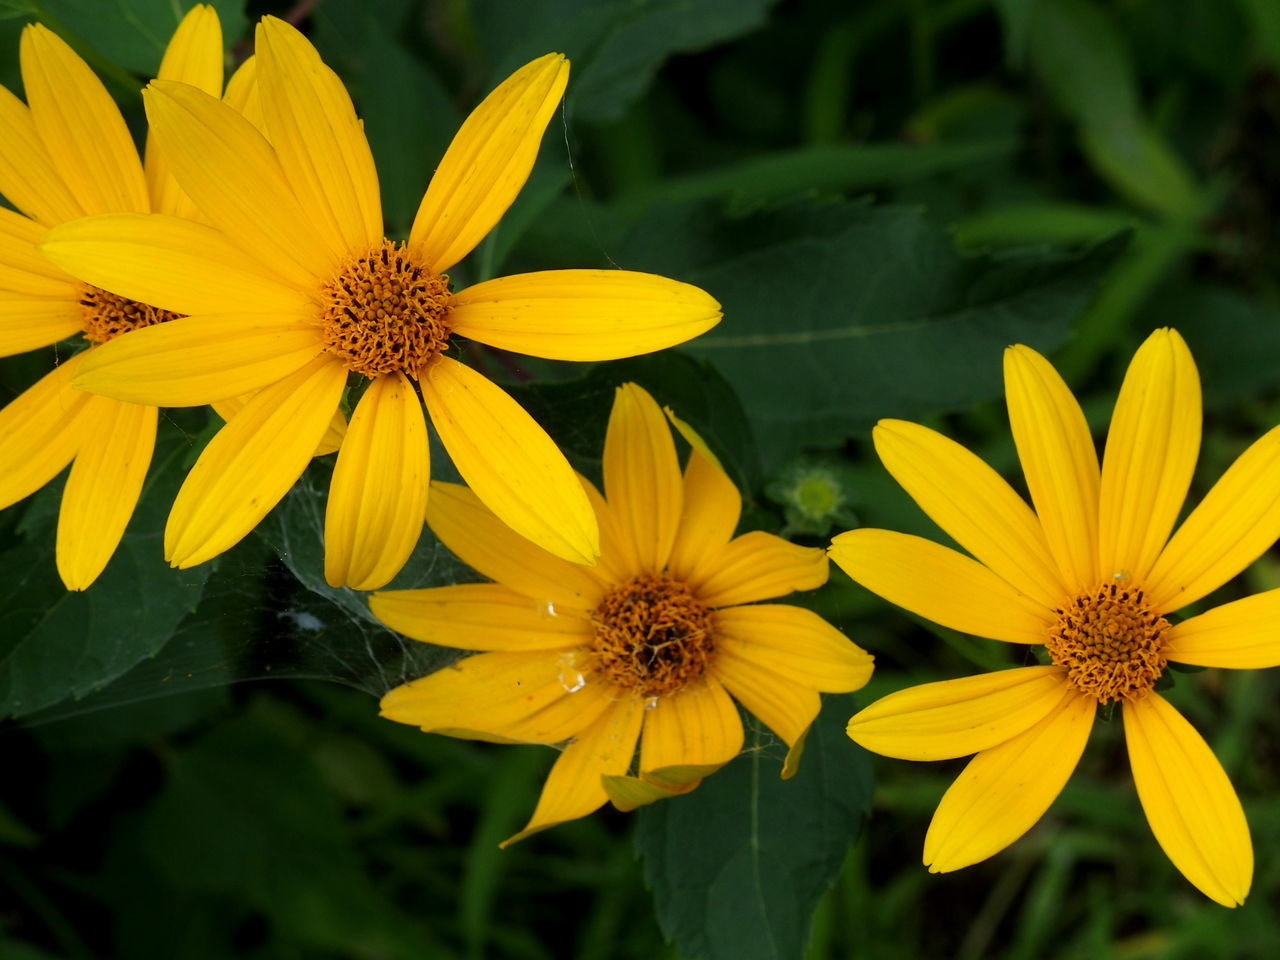 flower, yellow, petal, fragility, growth, beauty in nature, flower head, plant, freshness, nature, pollen, blooming, no people, day, outdoors, close-up, black-eyed susan